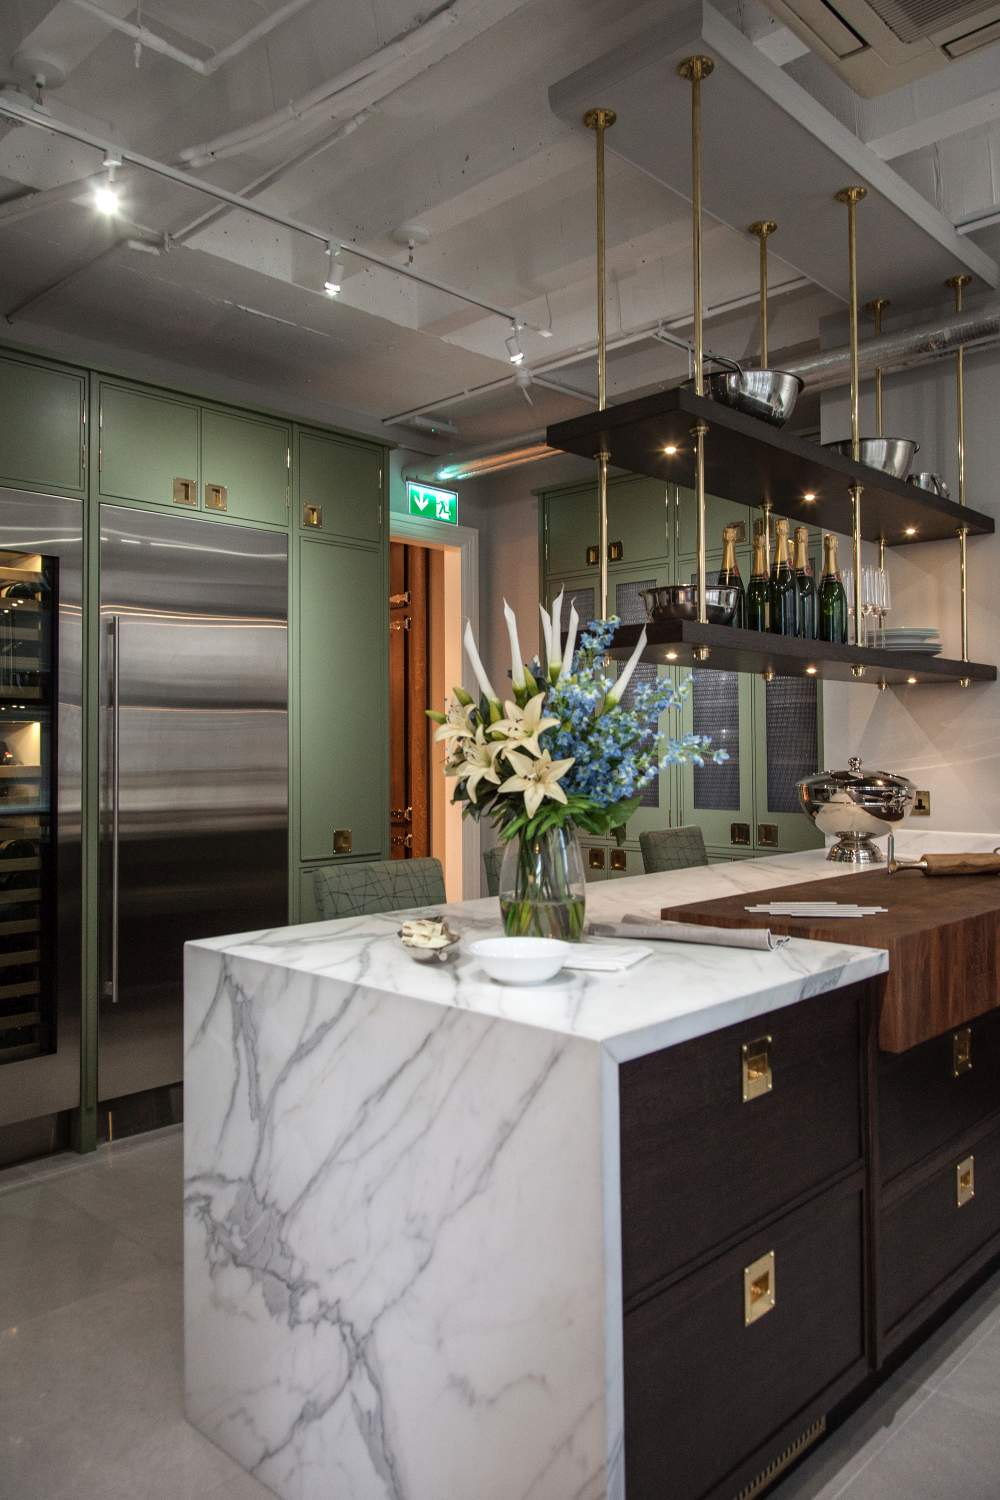 Waterfall kitchen countertop marble material